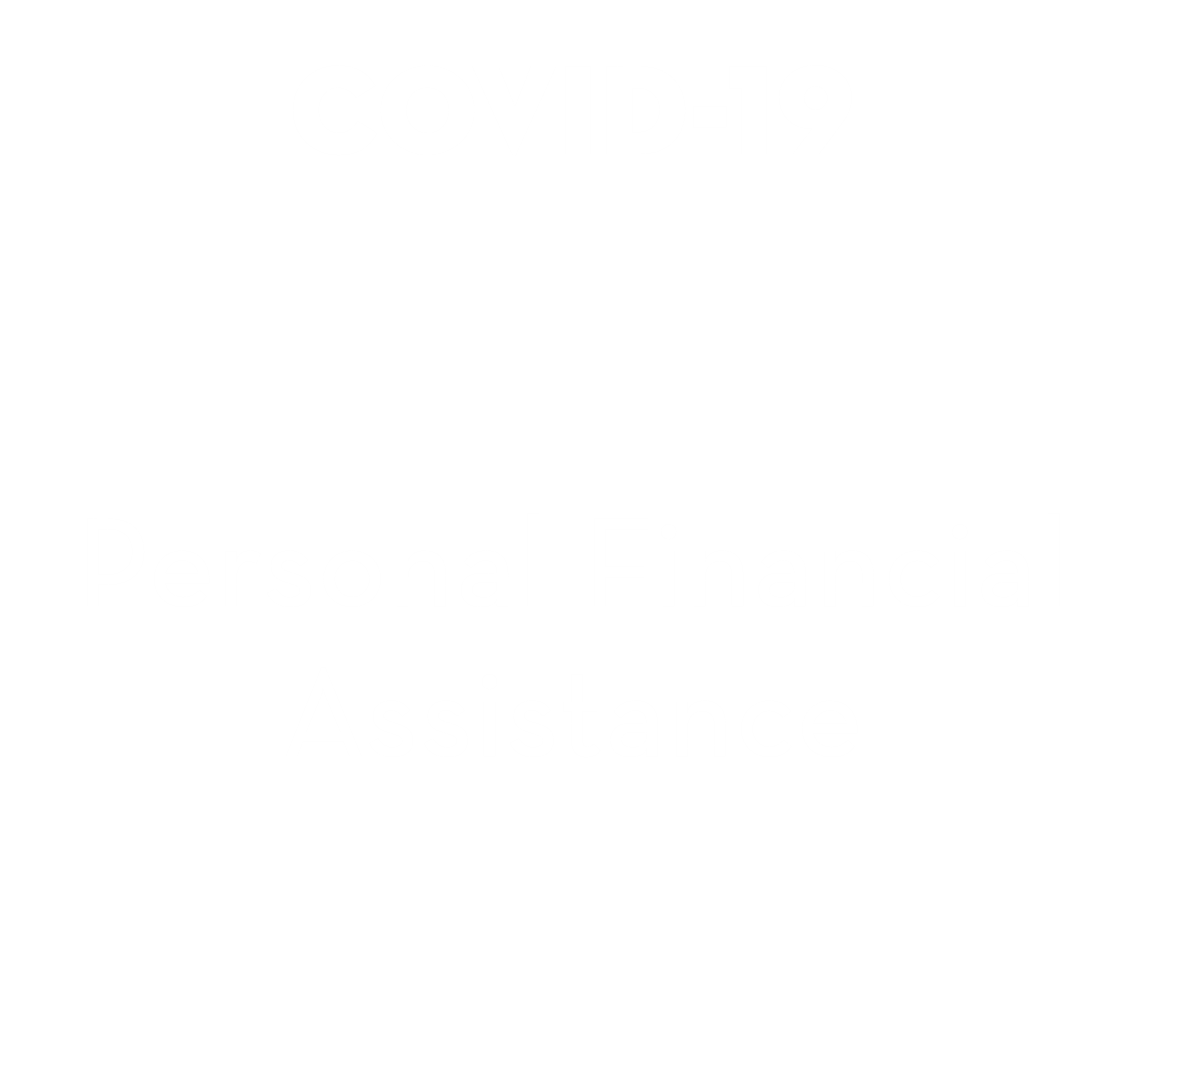 COVID-19 - Personal Financial Assistance